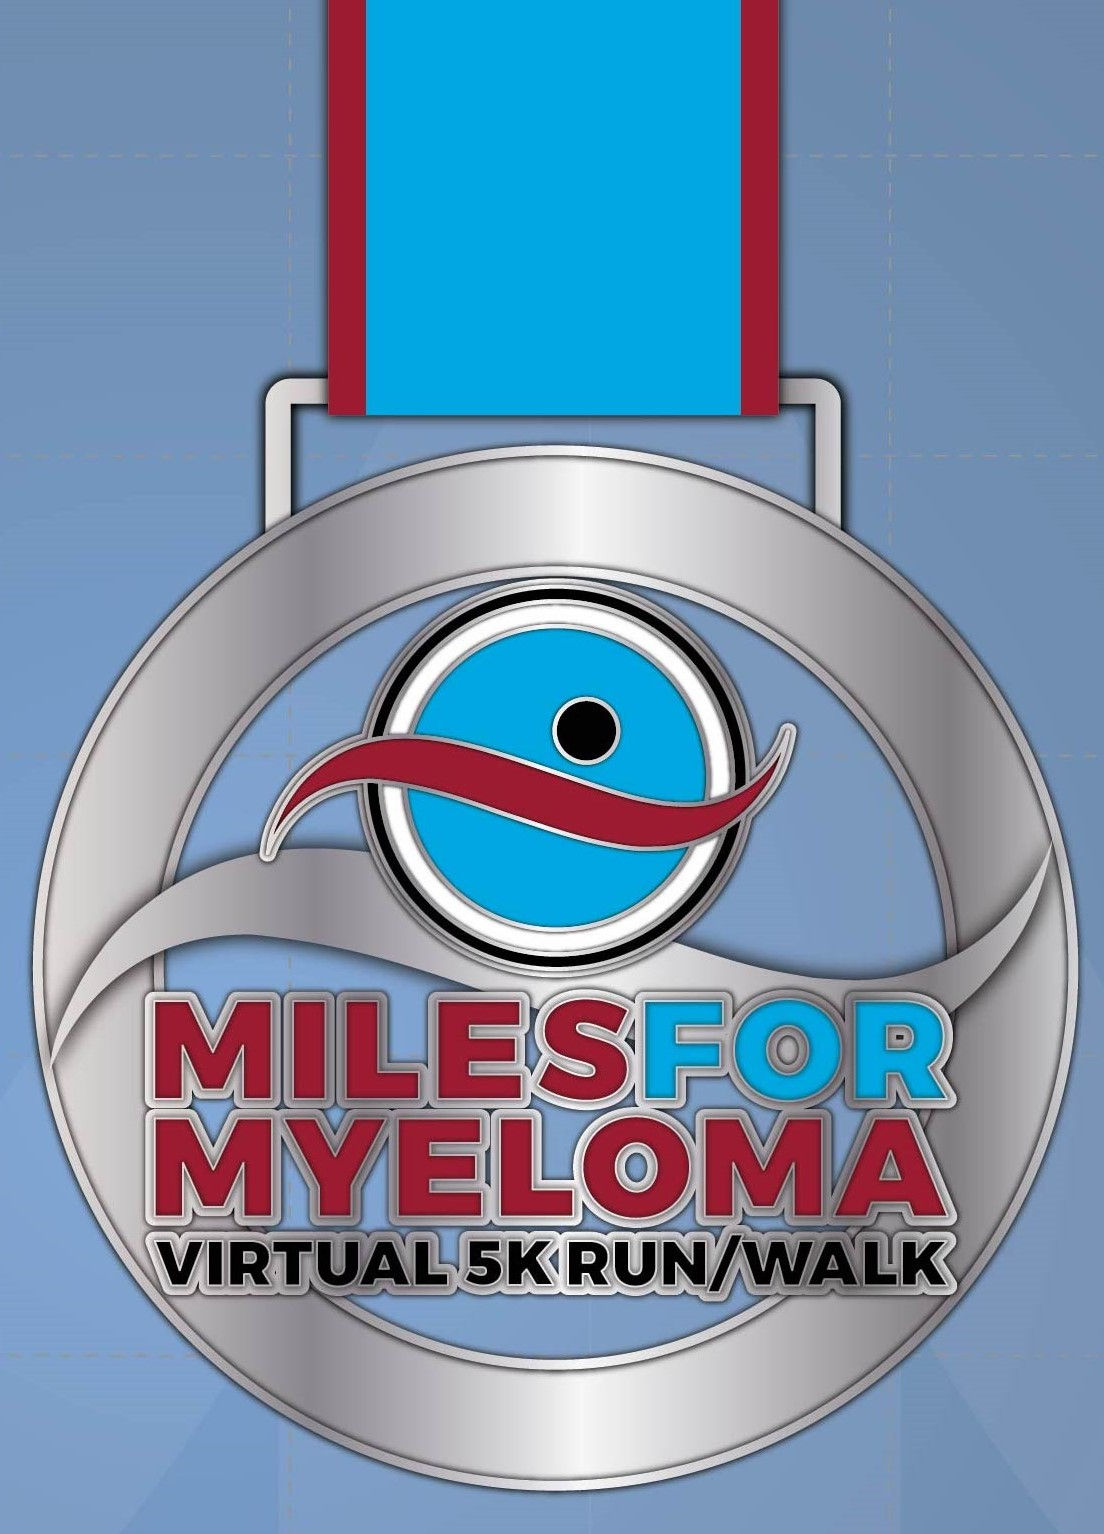 Miles for Myeloma Medal 2021